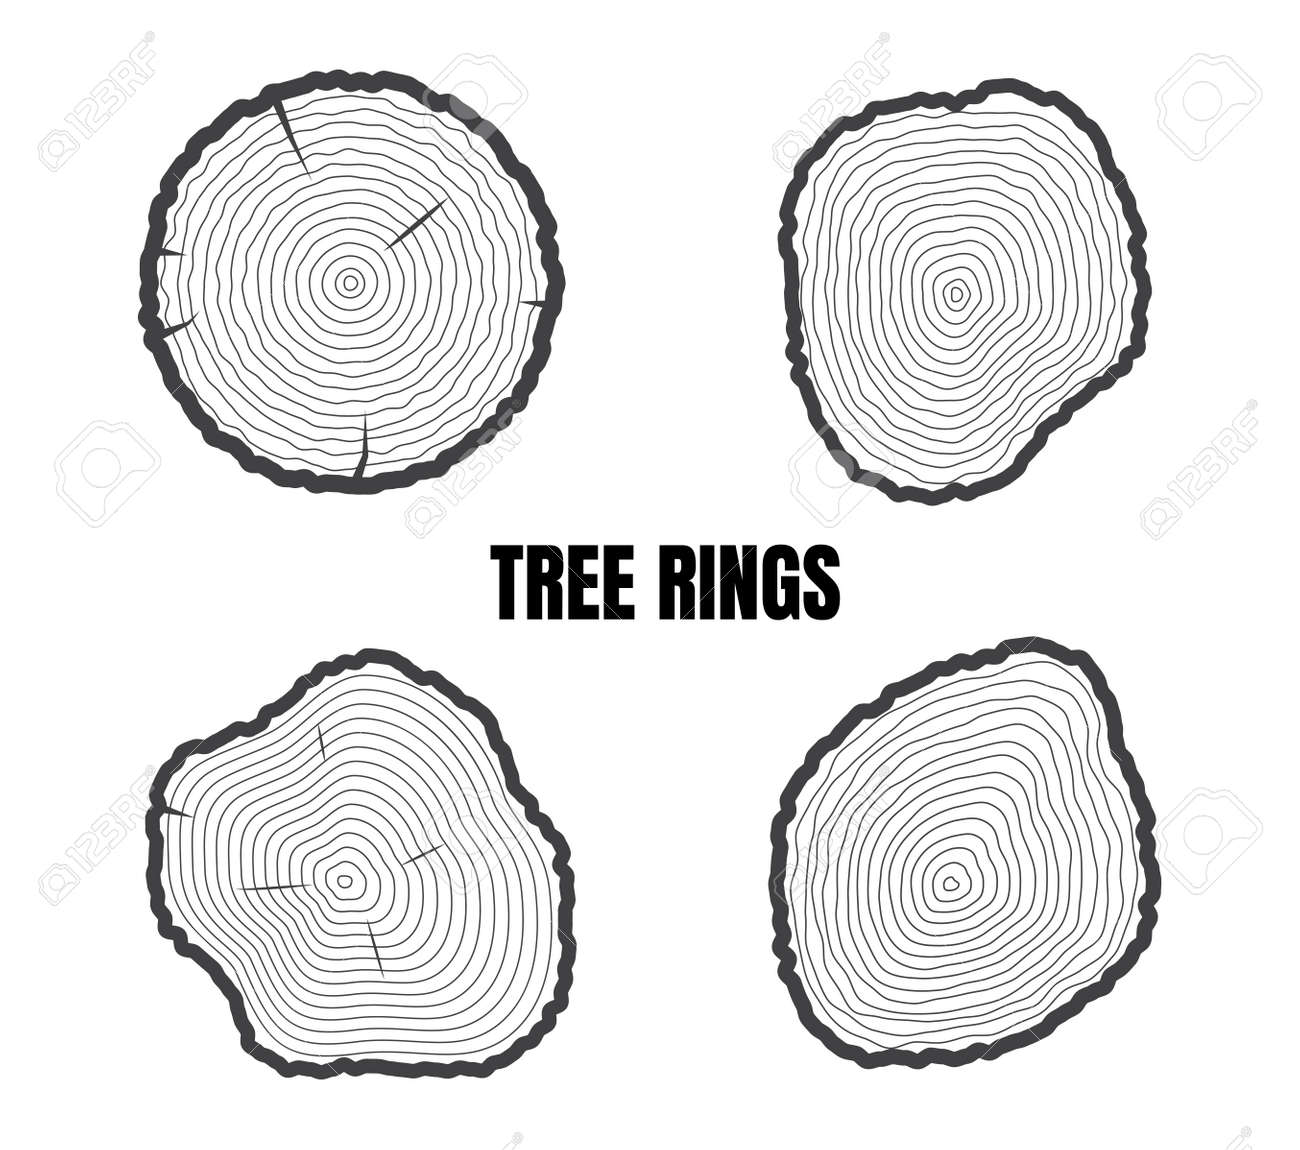 Collection of tree rings isolated on white background - Vector illustration - 152783146